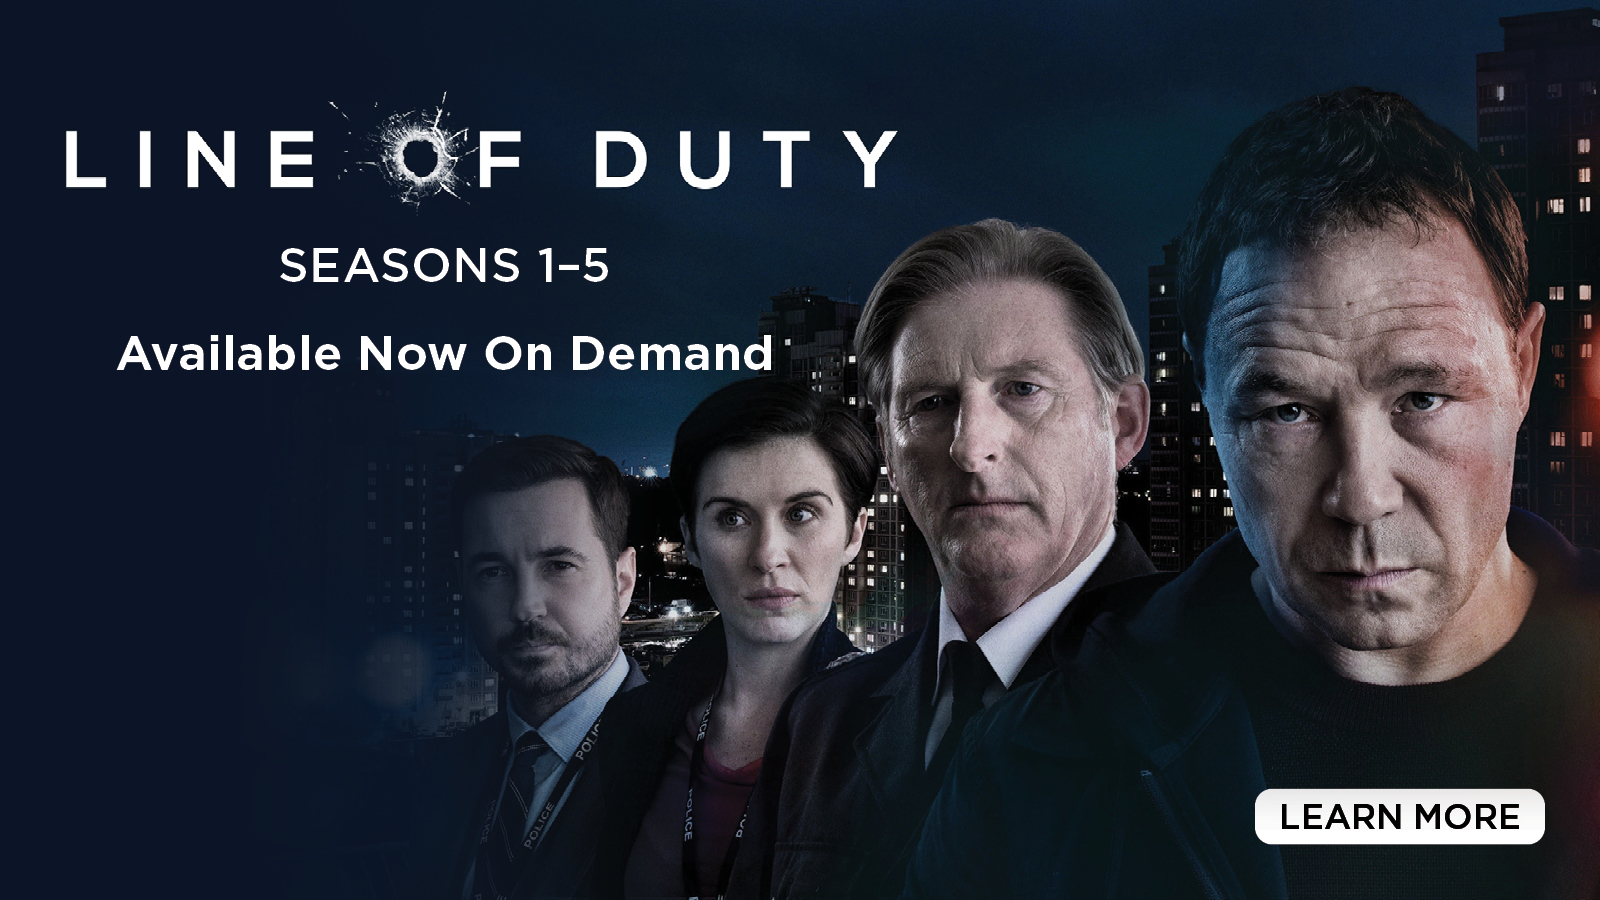 Line of Duty – Seasons 1-5 Available Now on Demand